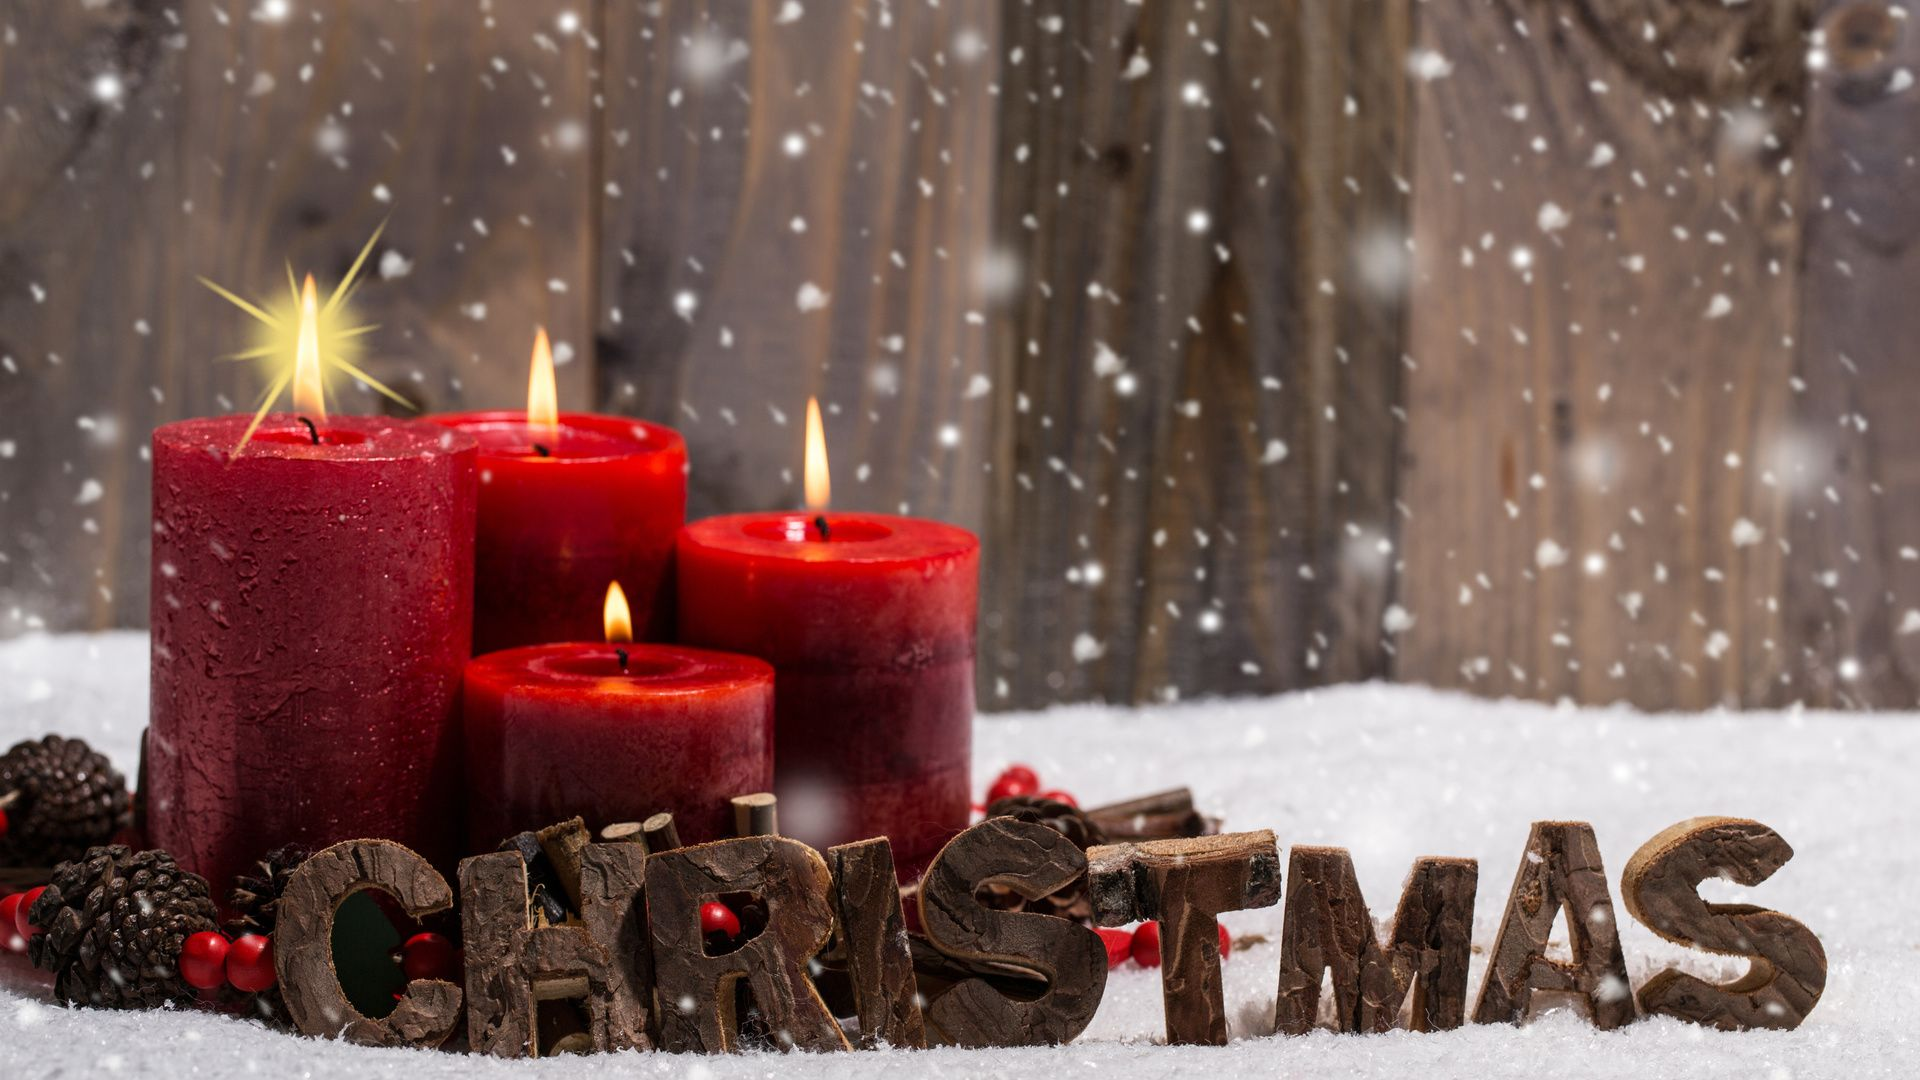 Christmas Holiday Warm Wallpaper and Background